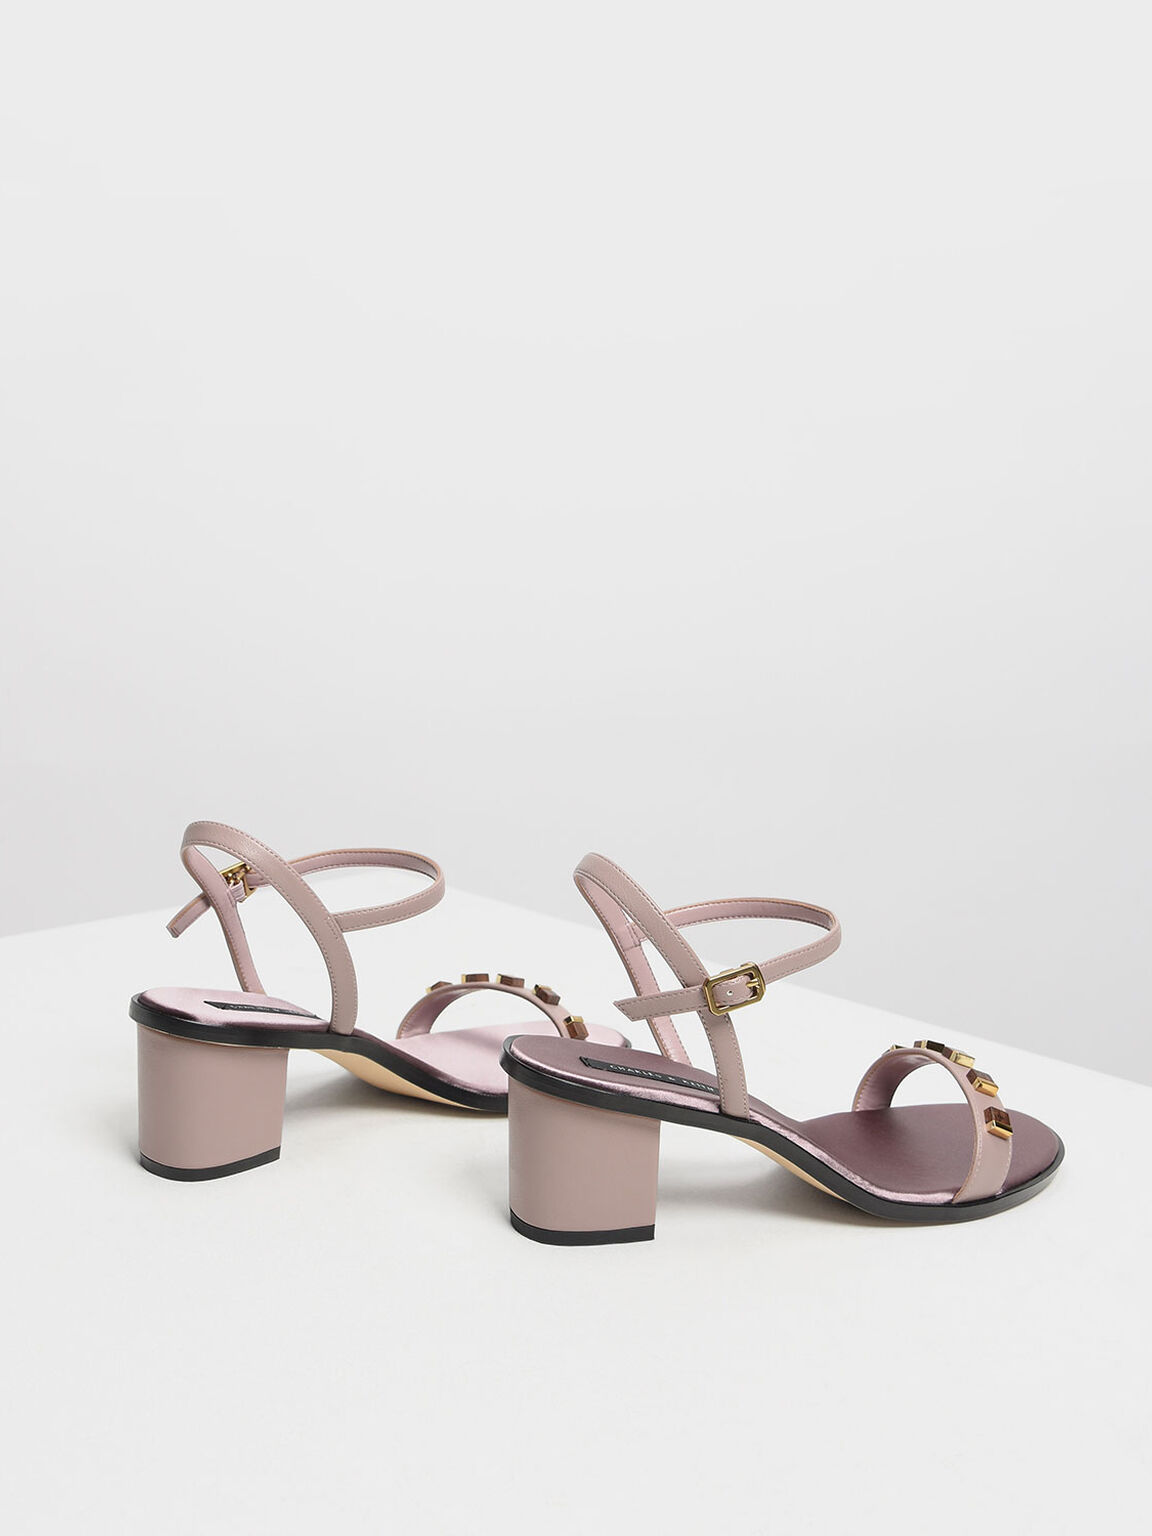 Embellished Heeled Sandals, Nude, hi-res